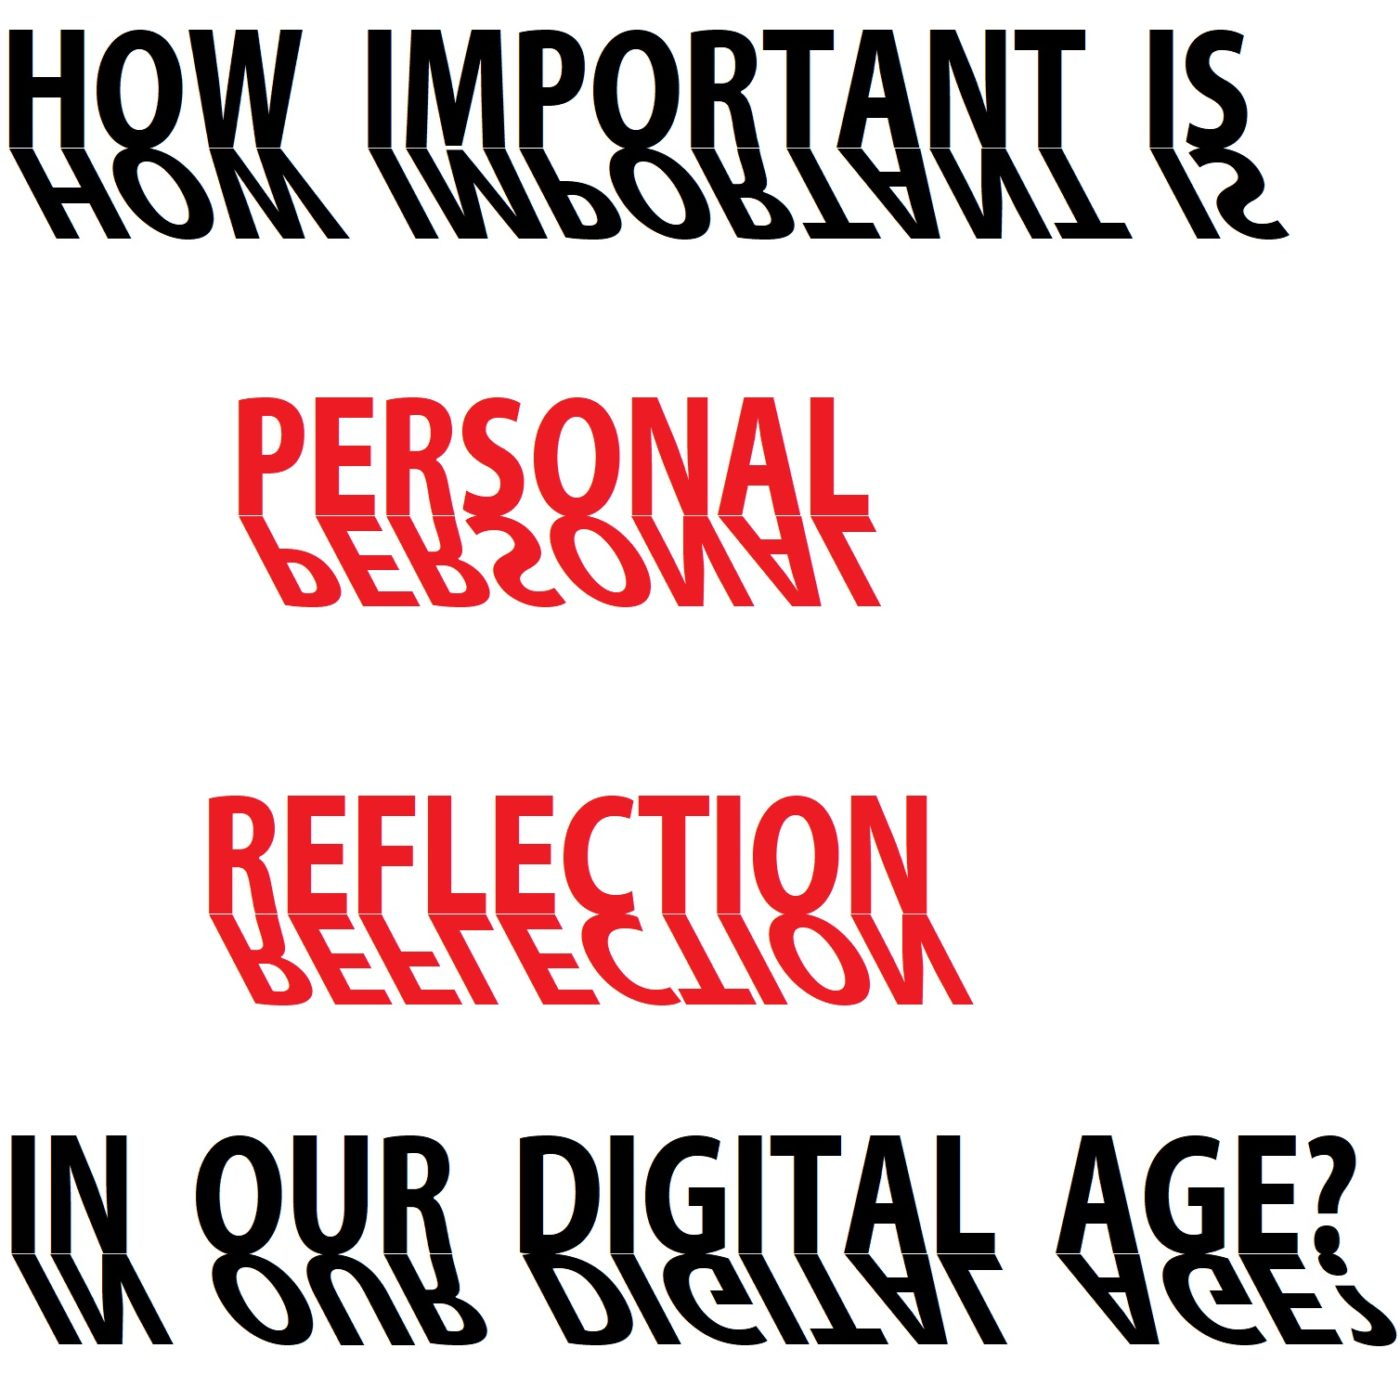 How important is personal reflection in our digital age?